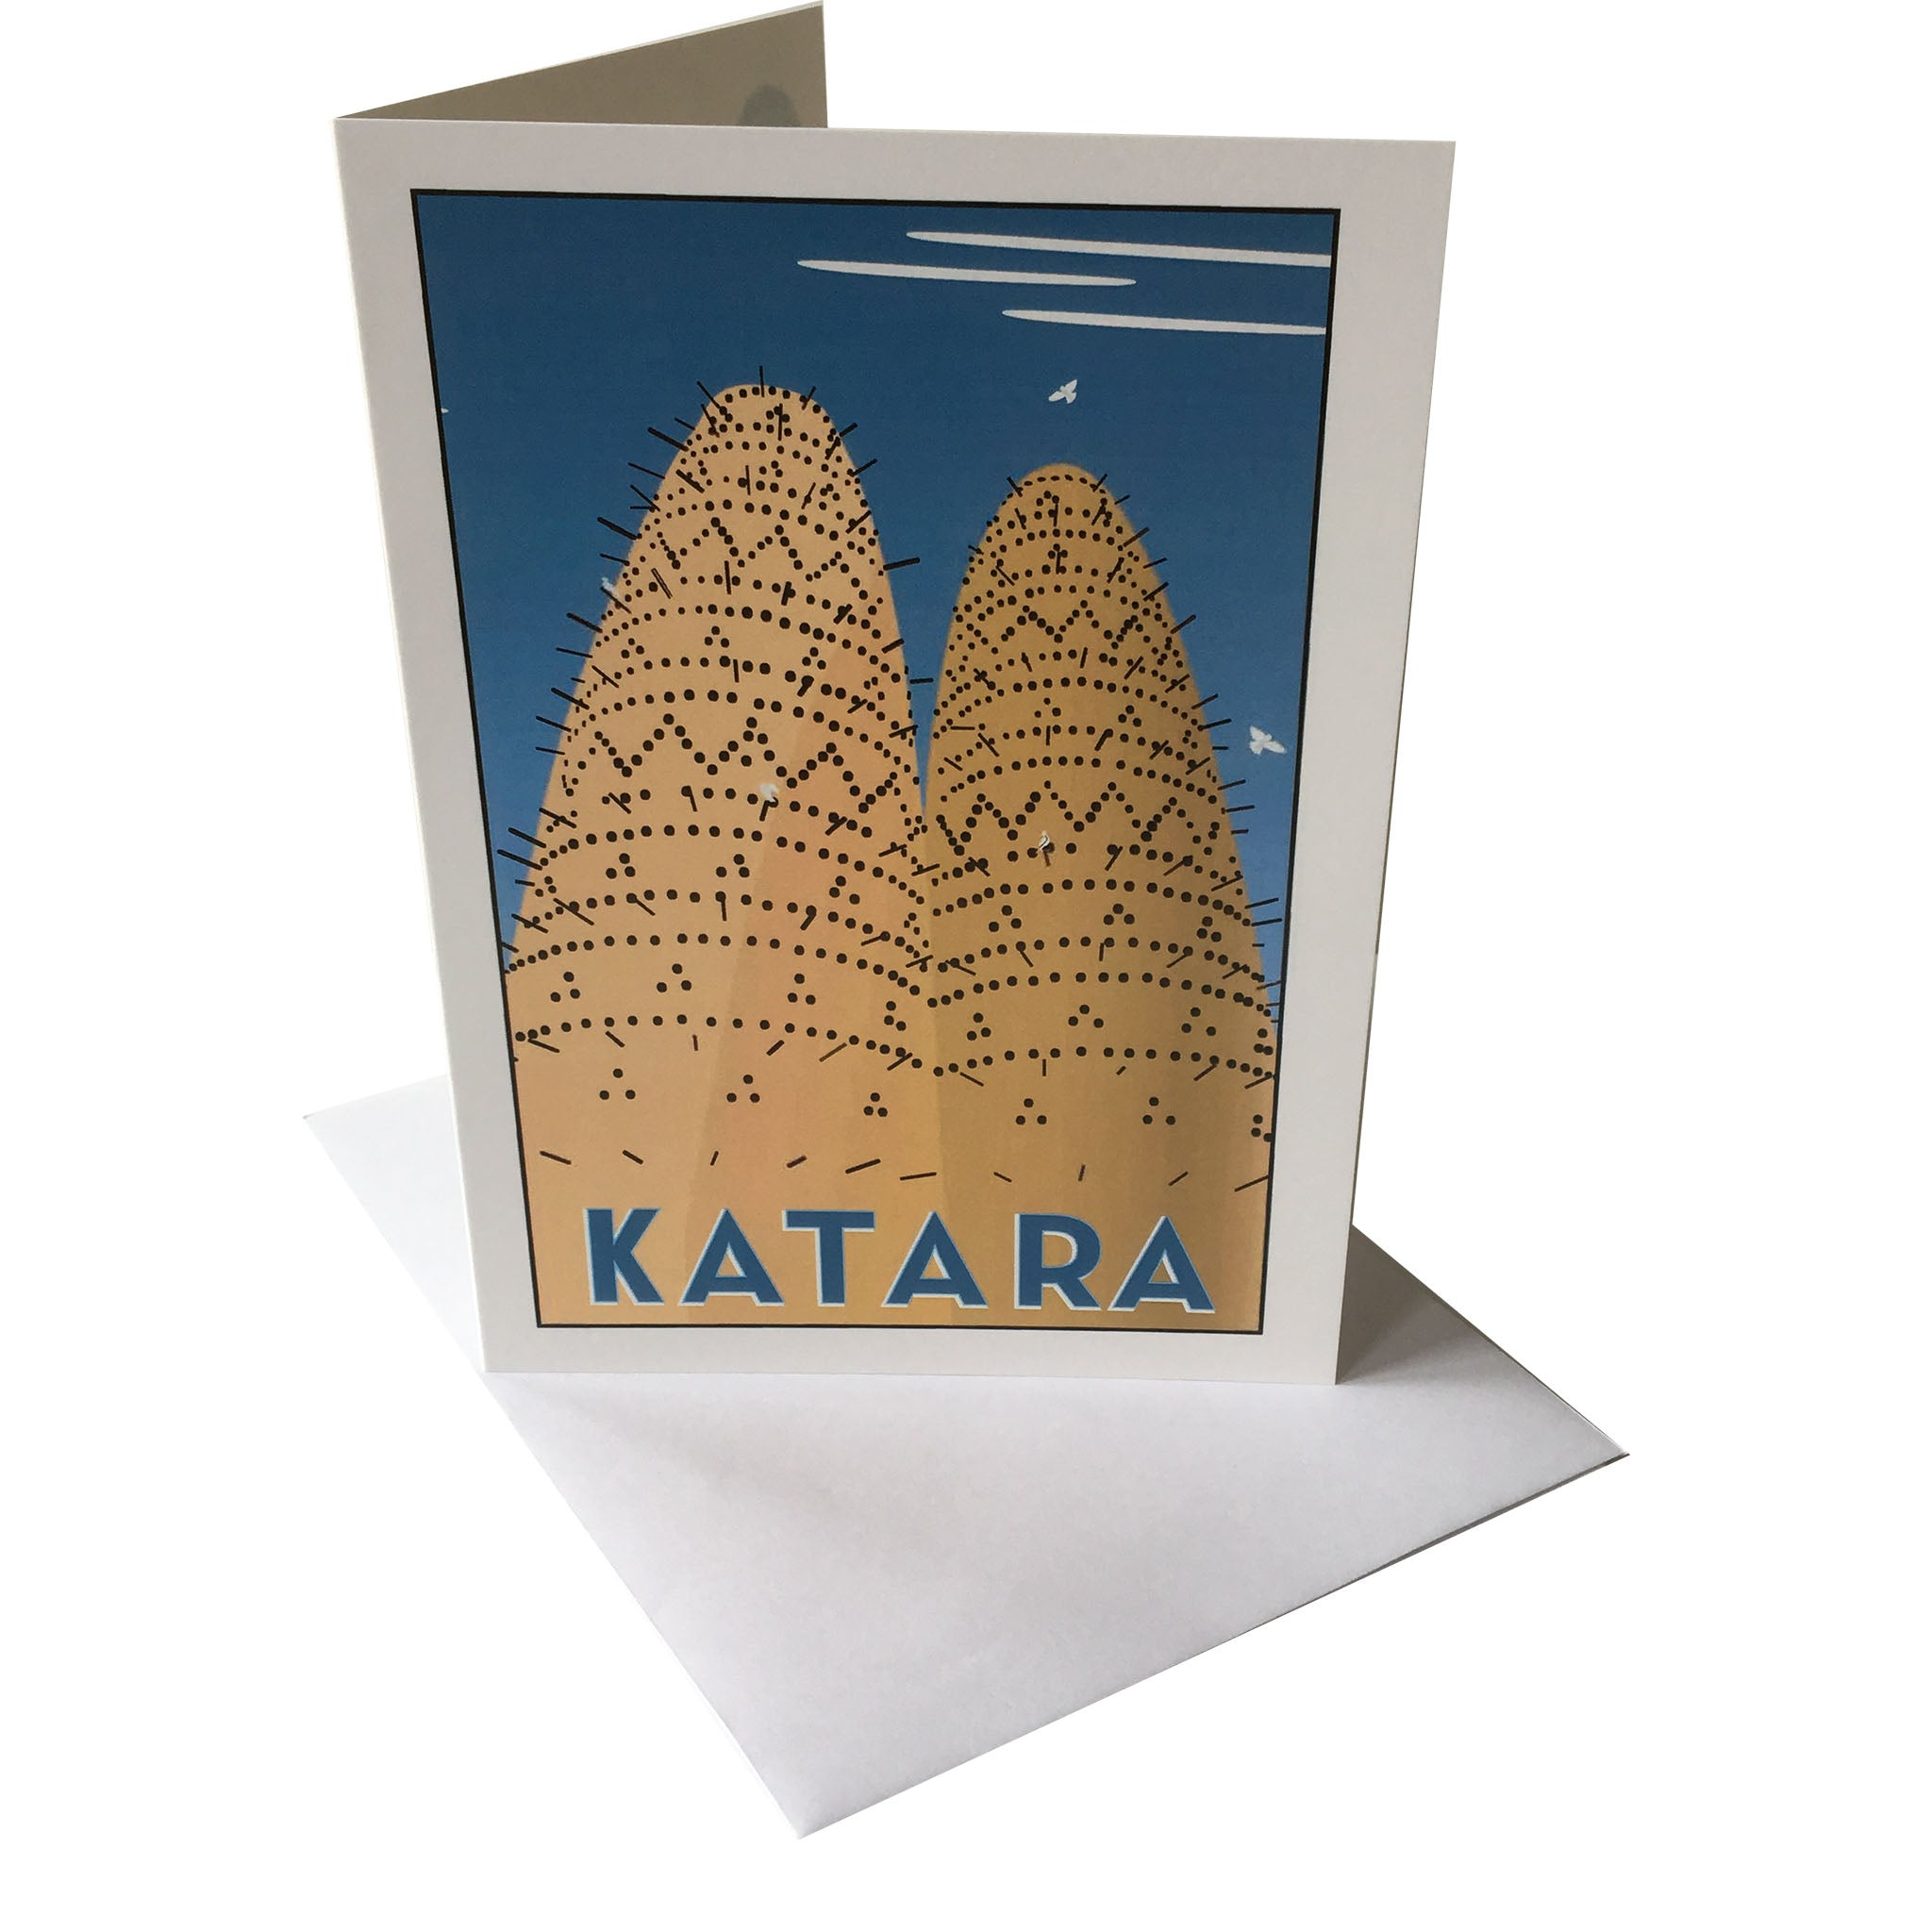 Katara Greetings Card